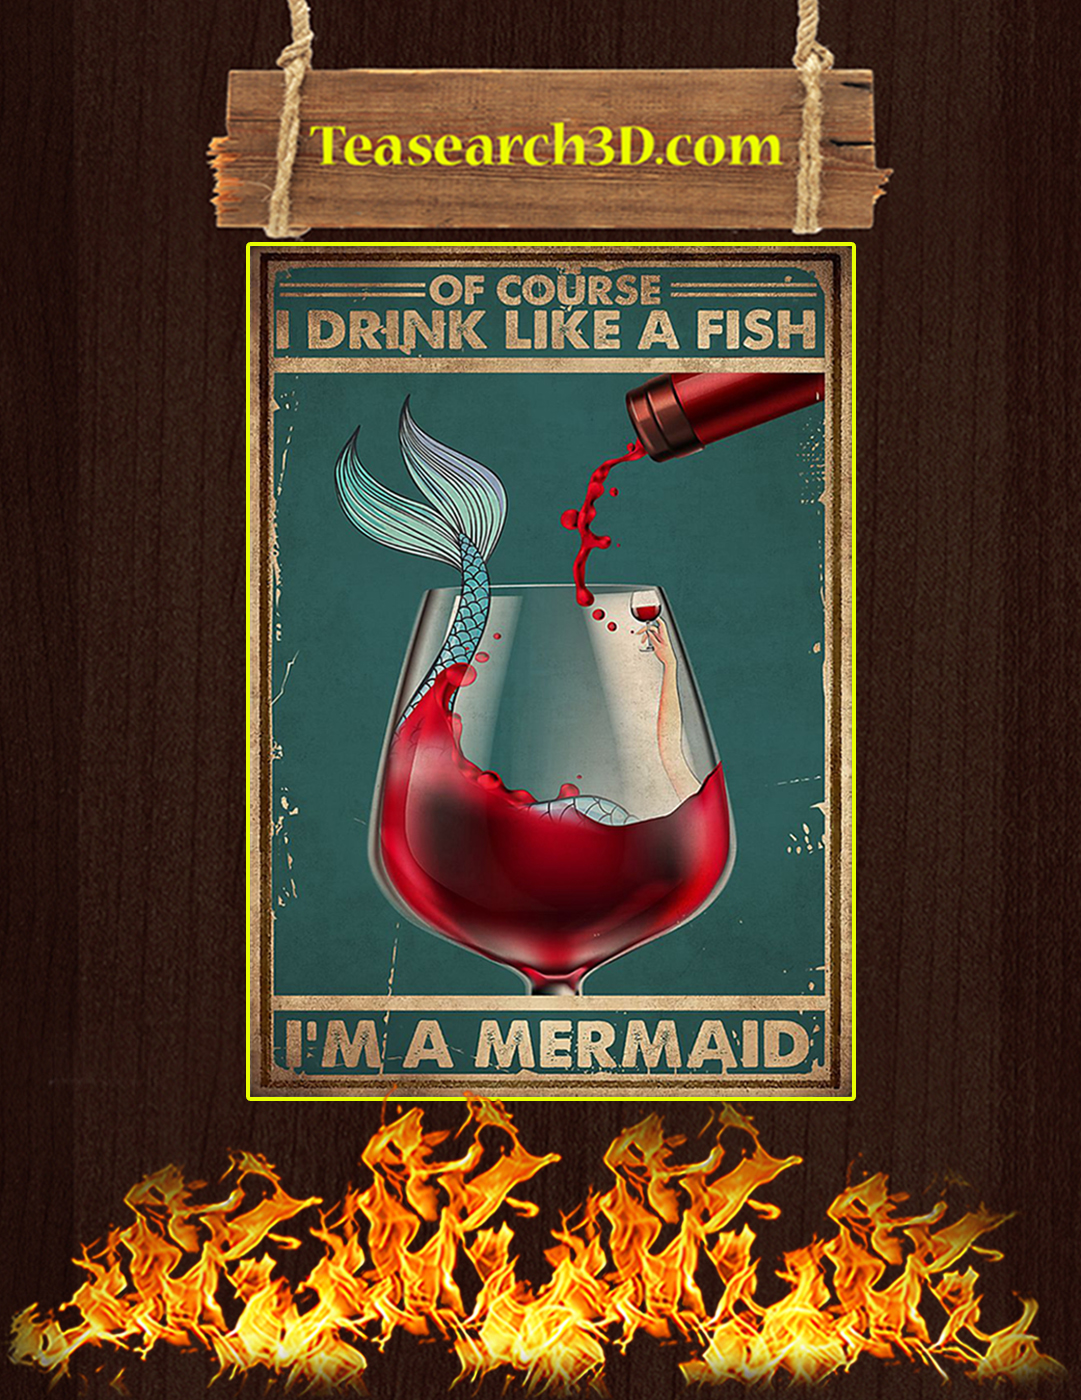 Wine of course I drink like a fish I'm a mermaid poster A2